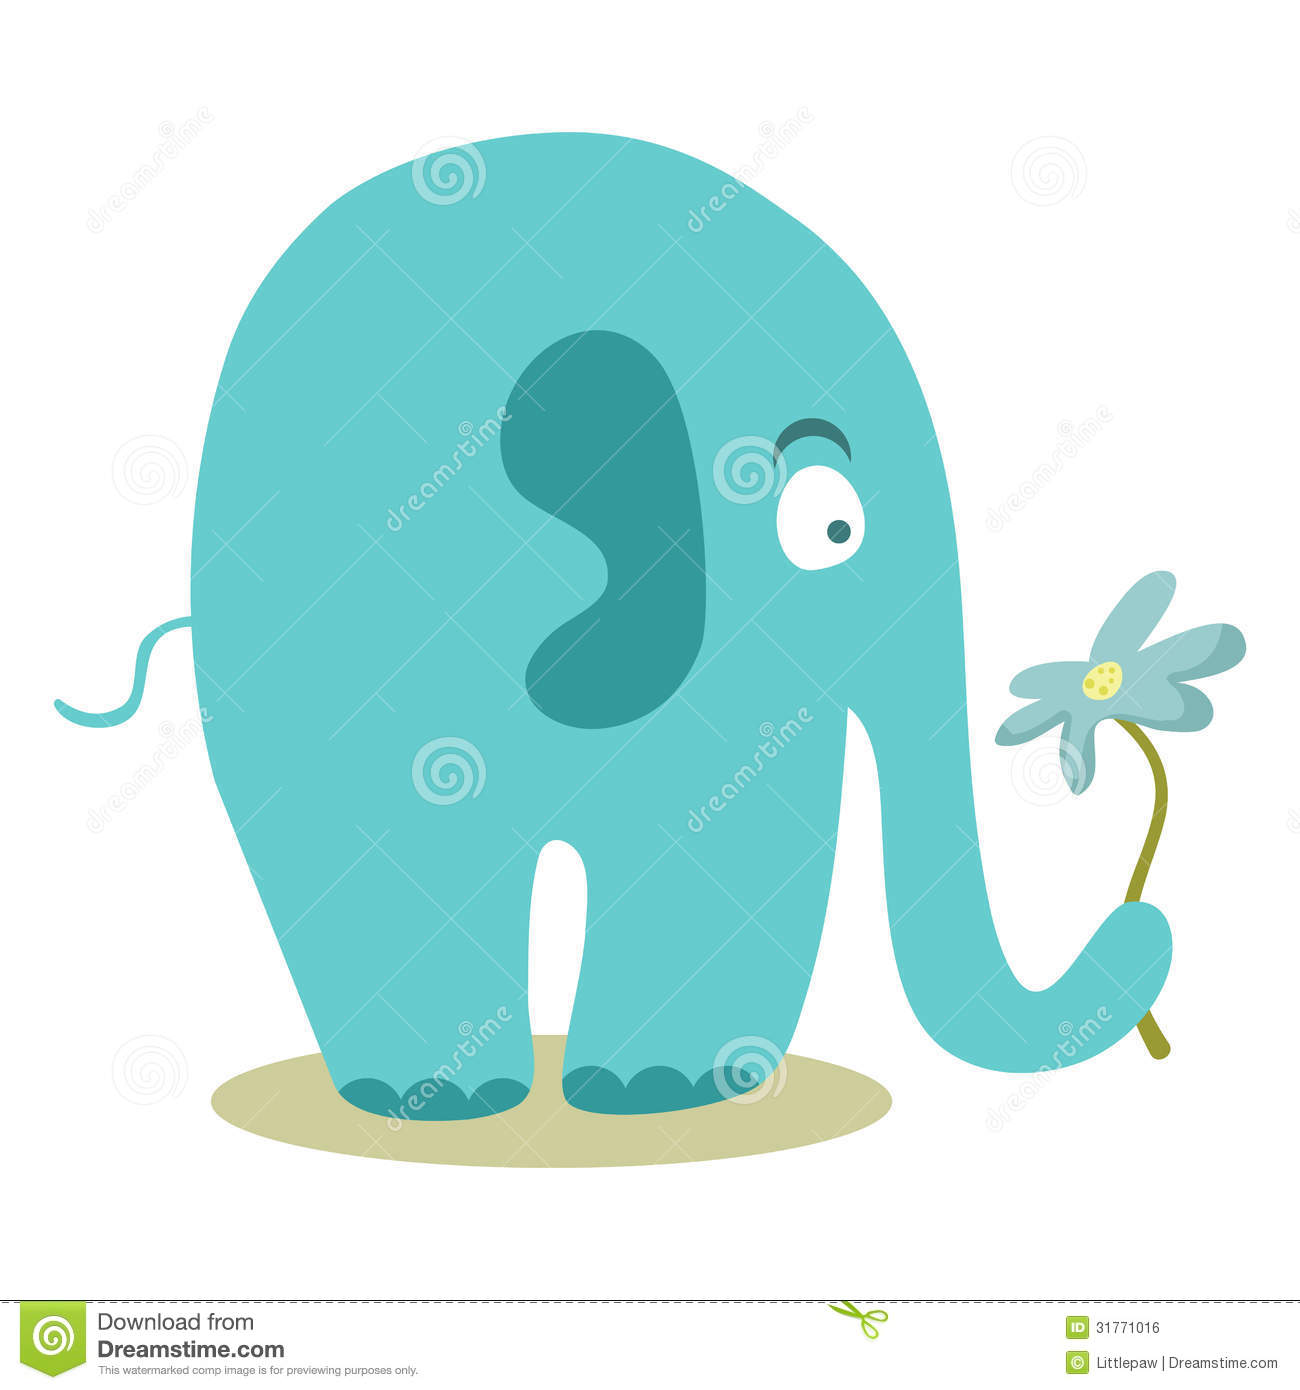 Cute Elephant Holding A Flower Royalty Free Stock Image